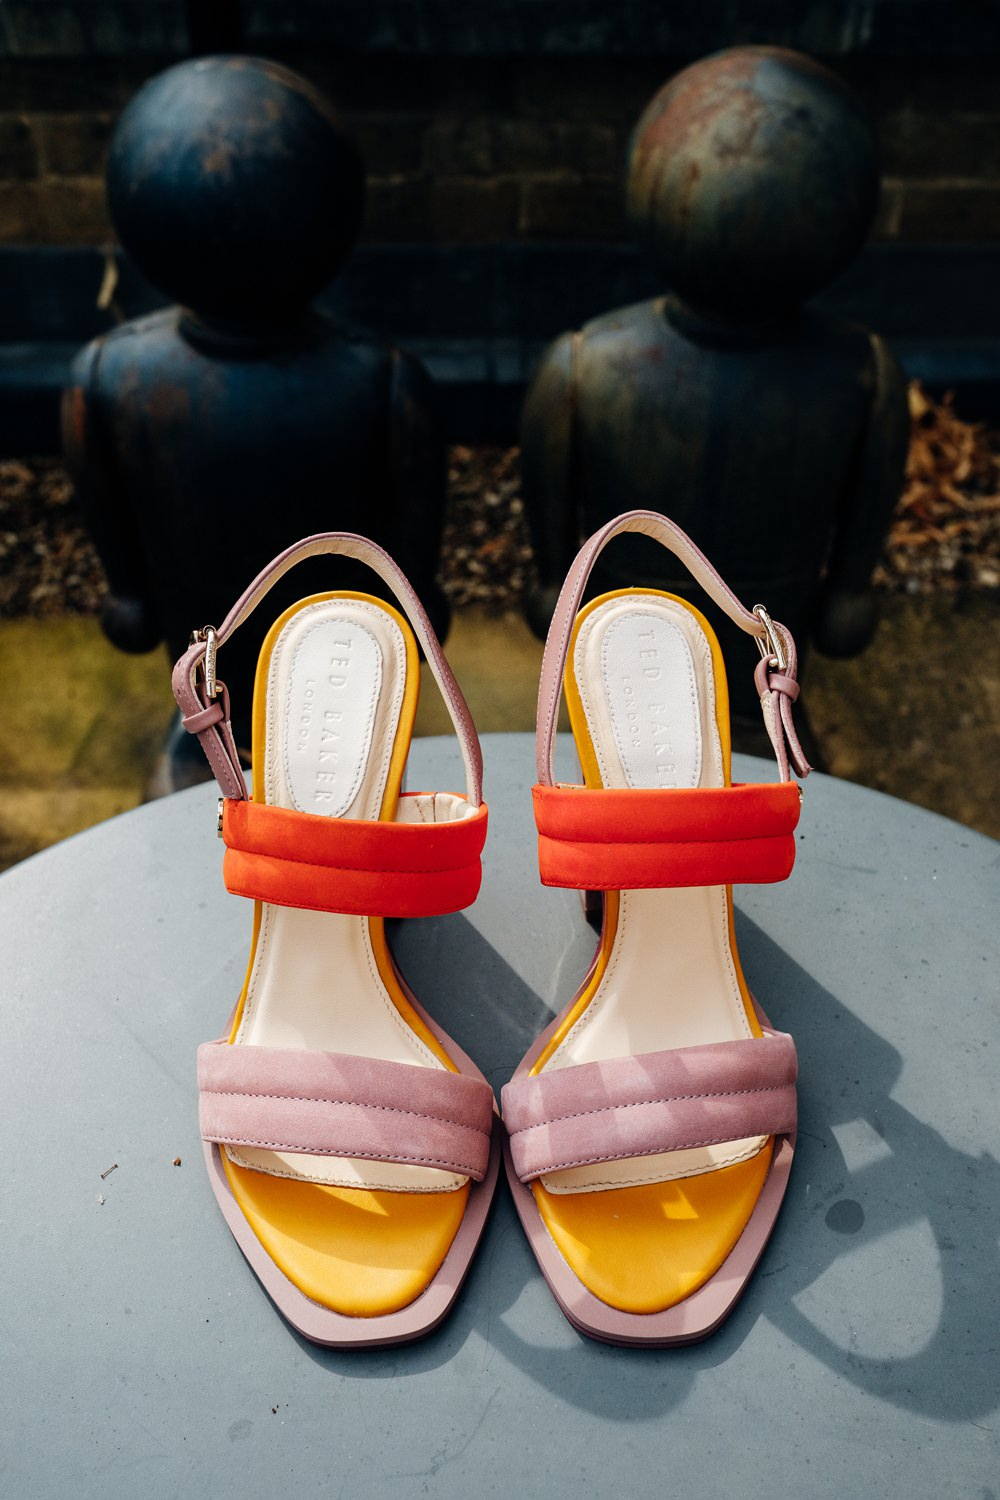 Colour Block Heels Shoes Bride Bridal East London Wedding Marianne Chua Photography